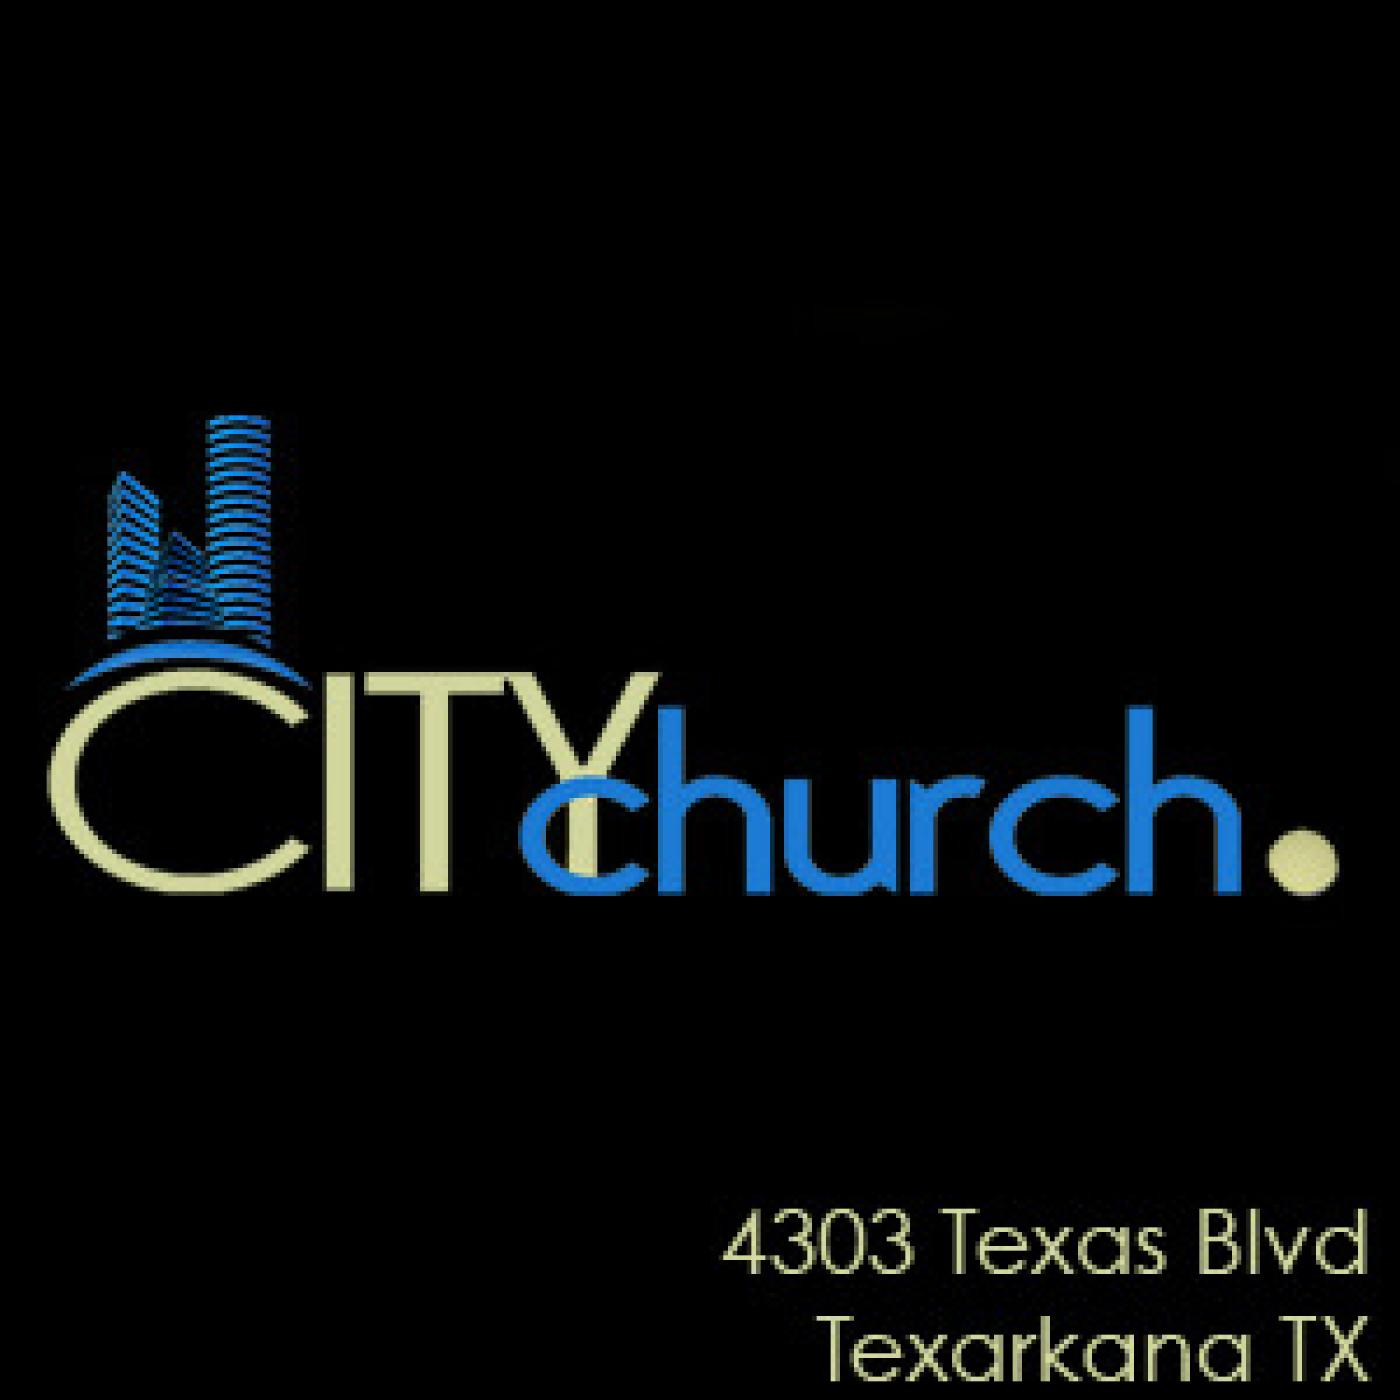 City Church Texarkana